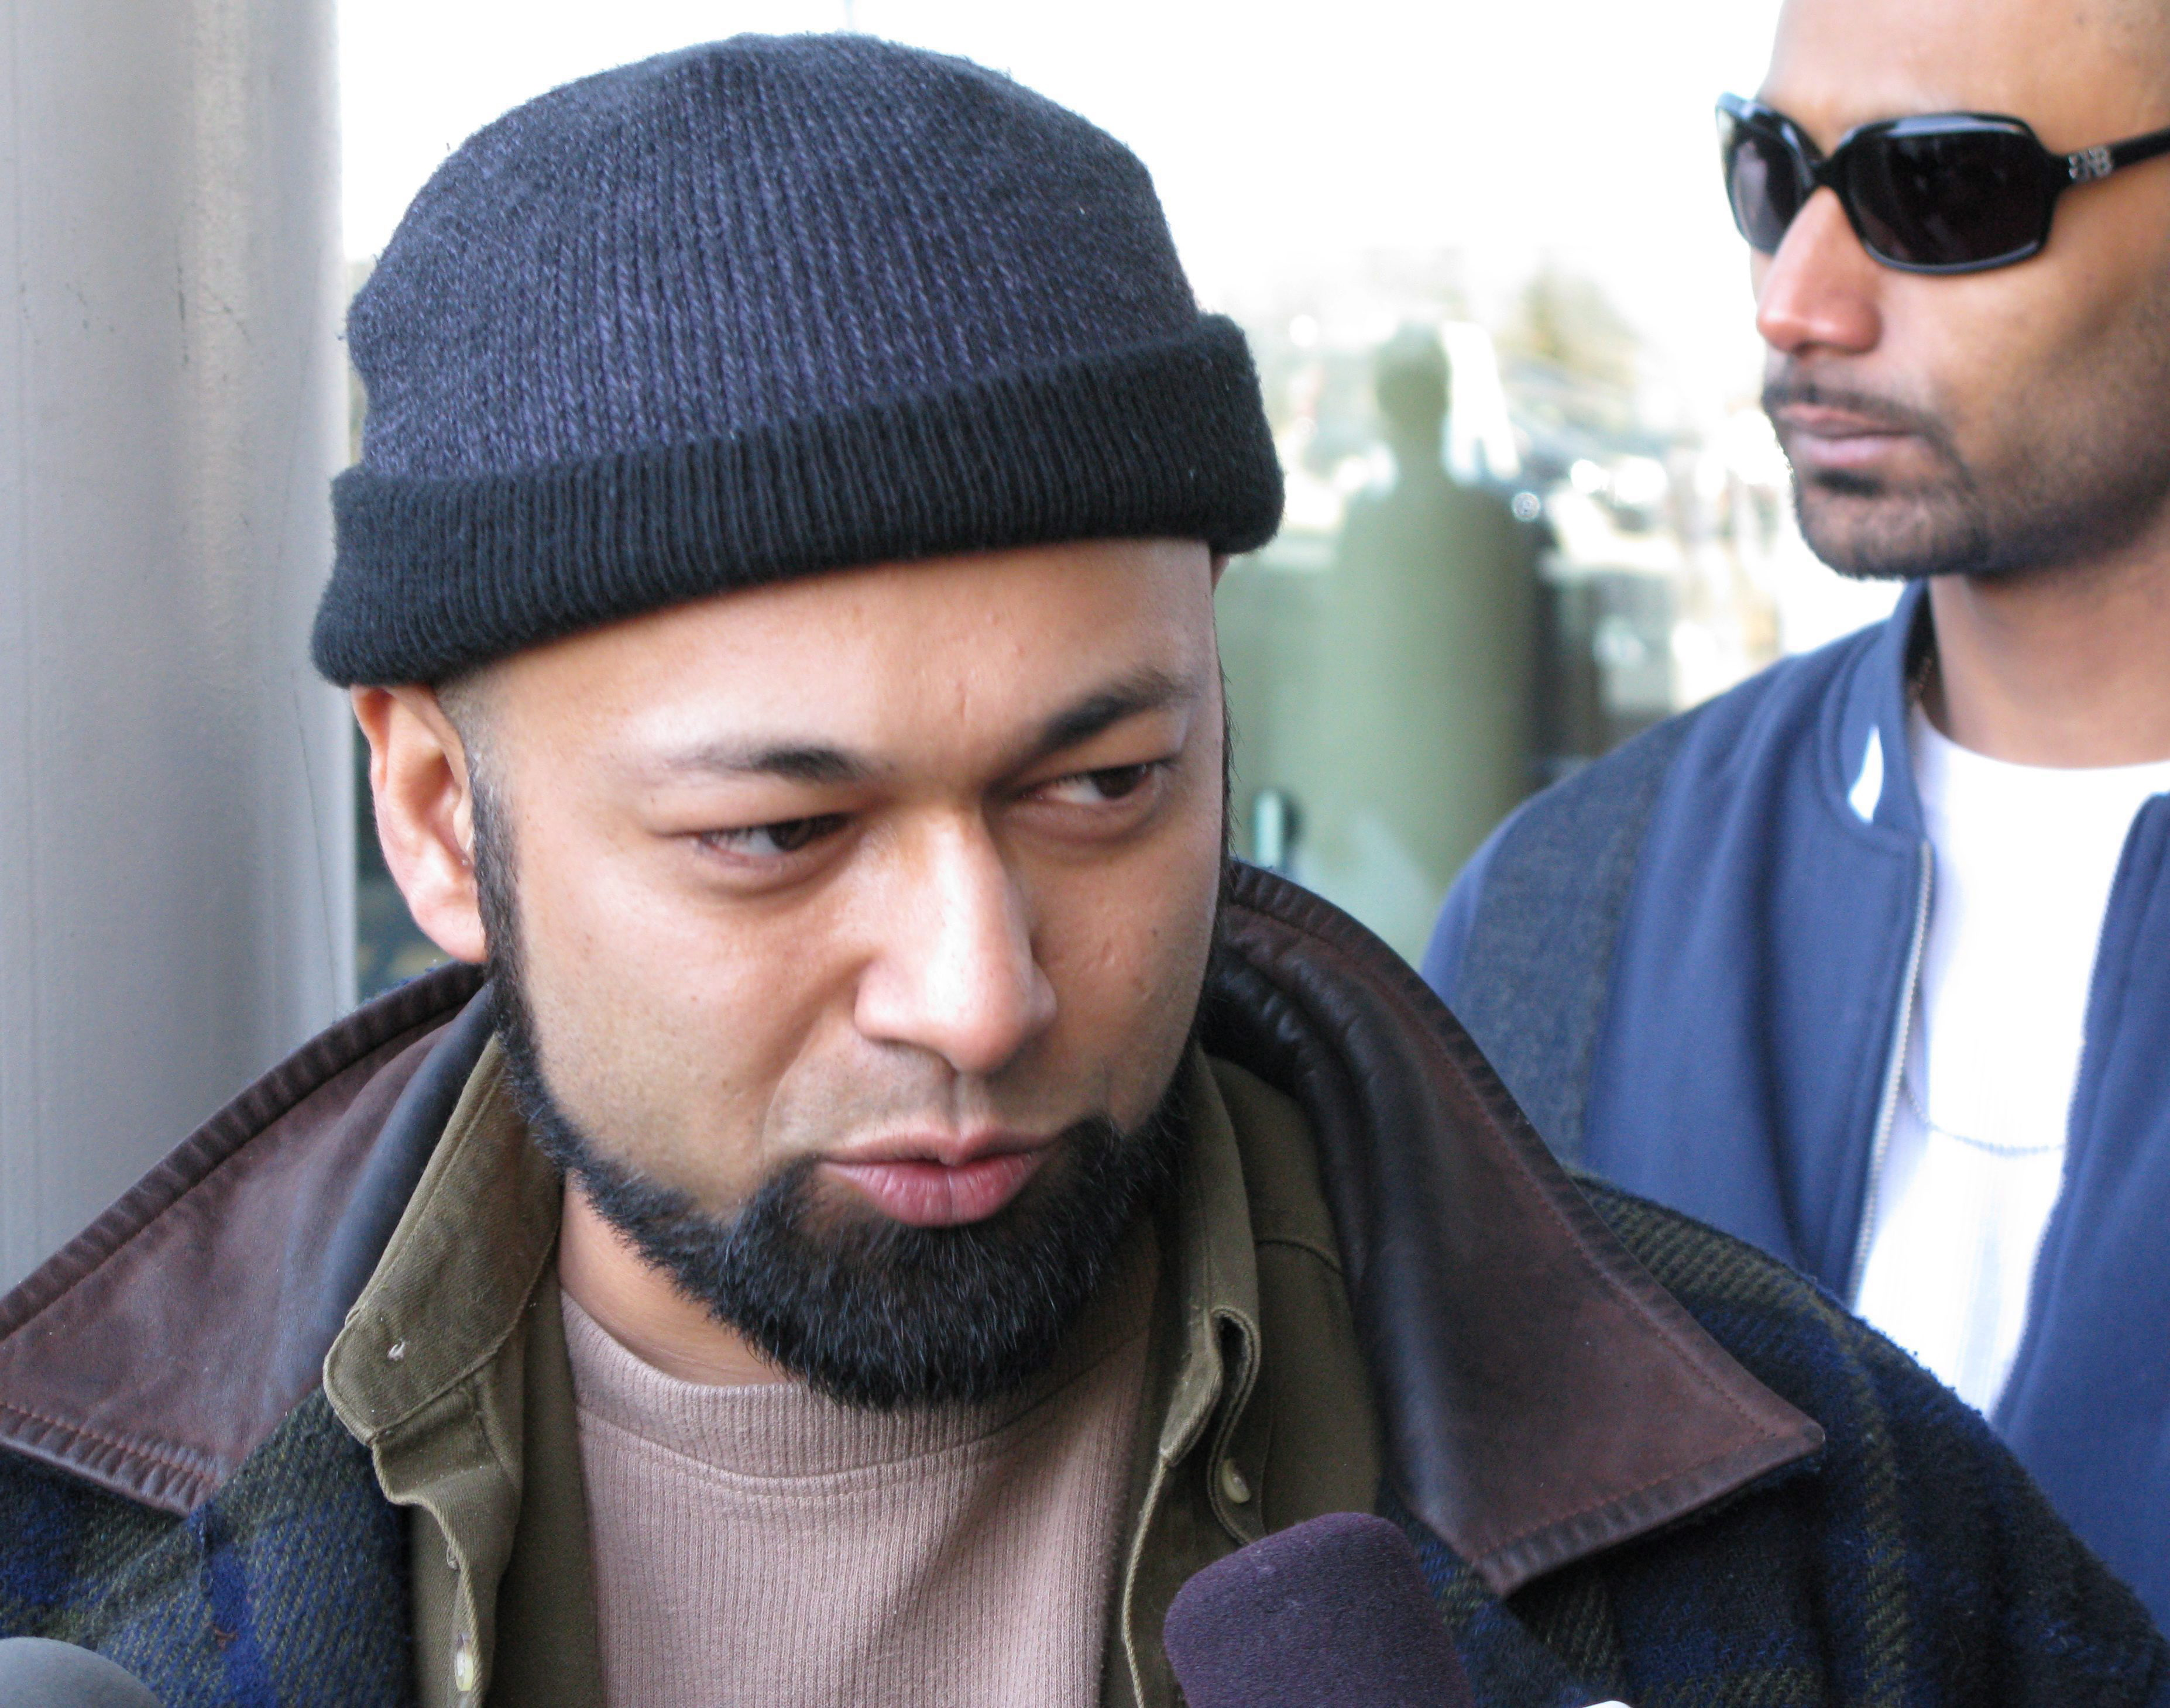 Toronto 18 informant: 'We need to get our act together'